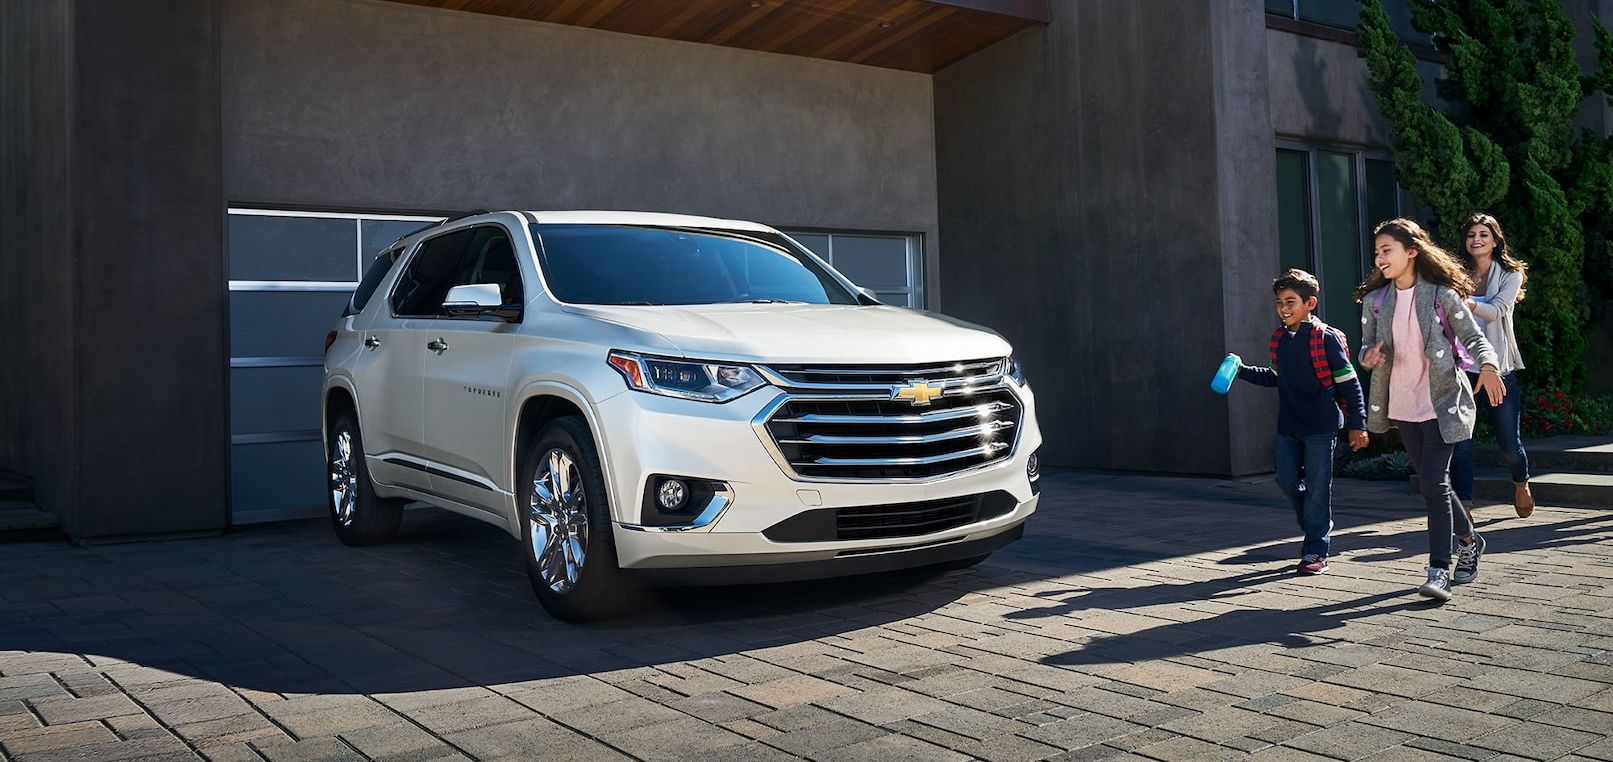 2019 Chevrolet Traverse for Sale in Carlsbad, CA